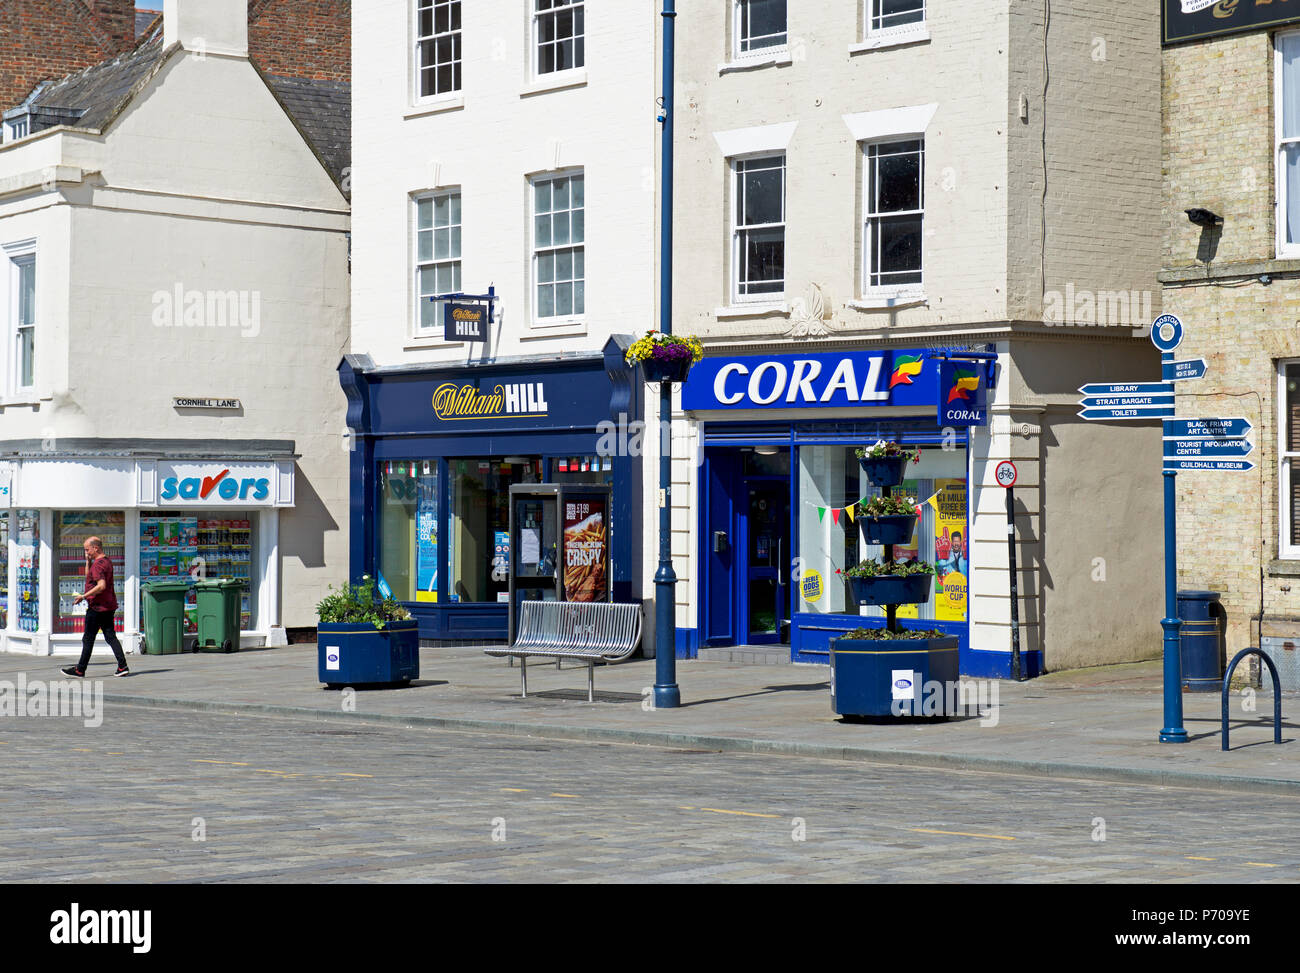 Adjacent betting shops - William Hill & Coral - Boston, Lincolnshire, England UK - Stock Image